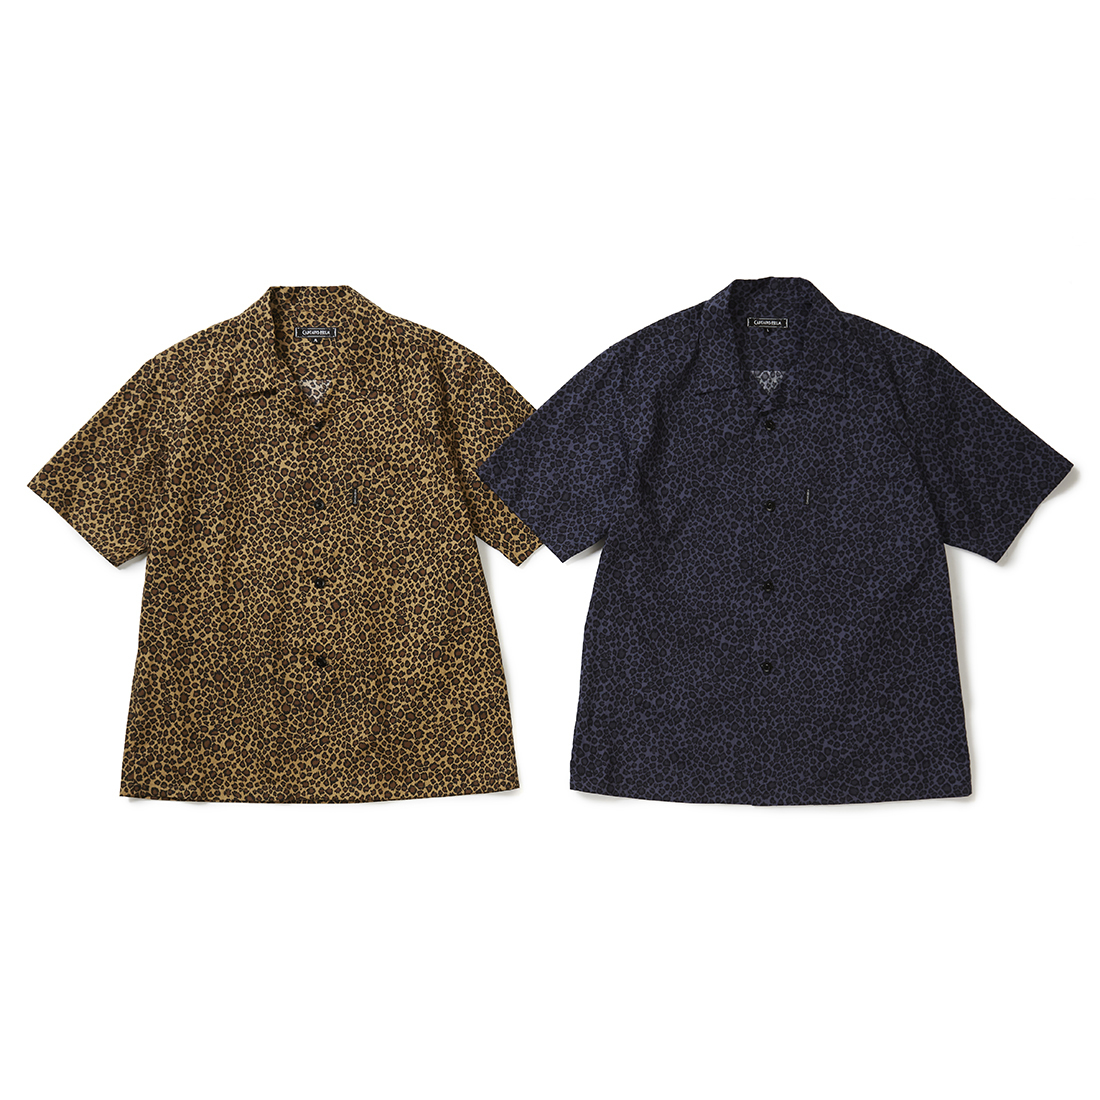 CAPTAINS HELM #LEOPARD PRINT OPEN WIDE S/S SHIRTS